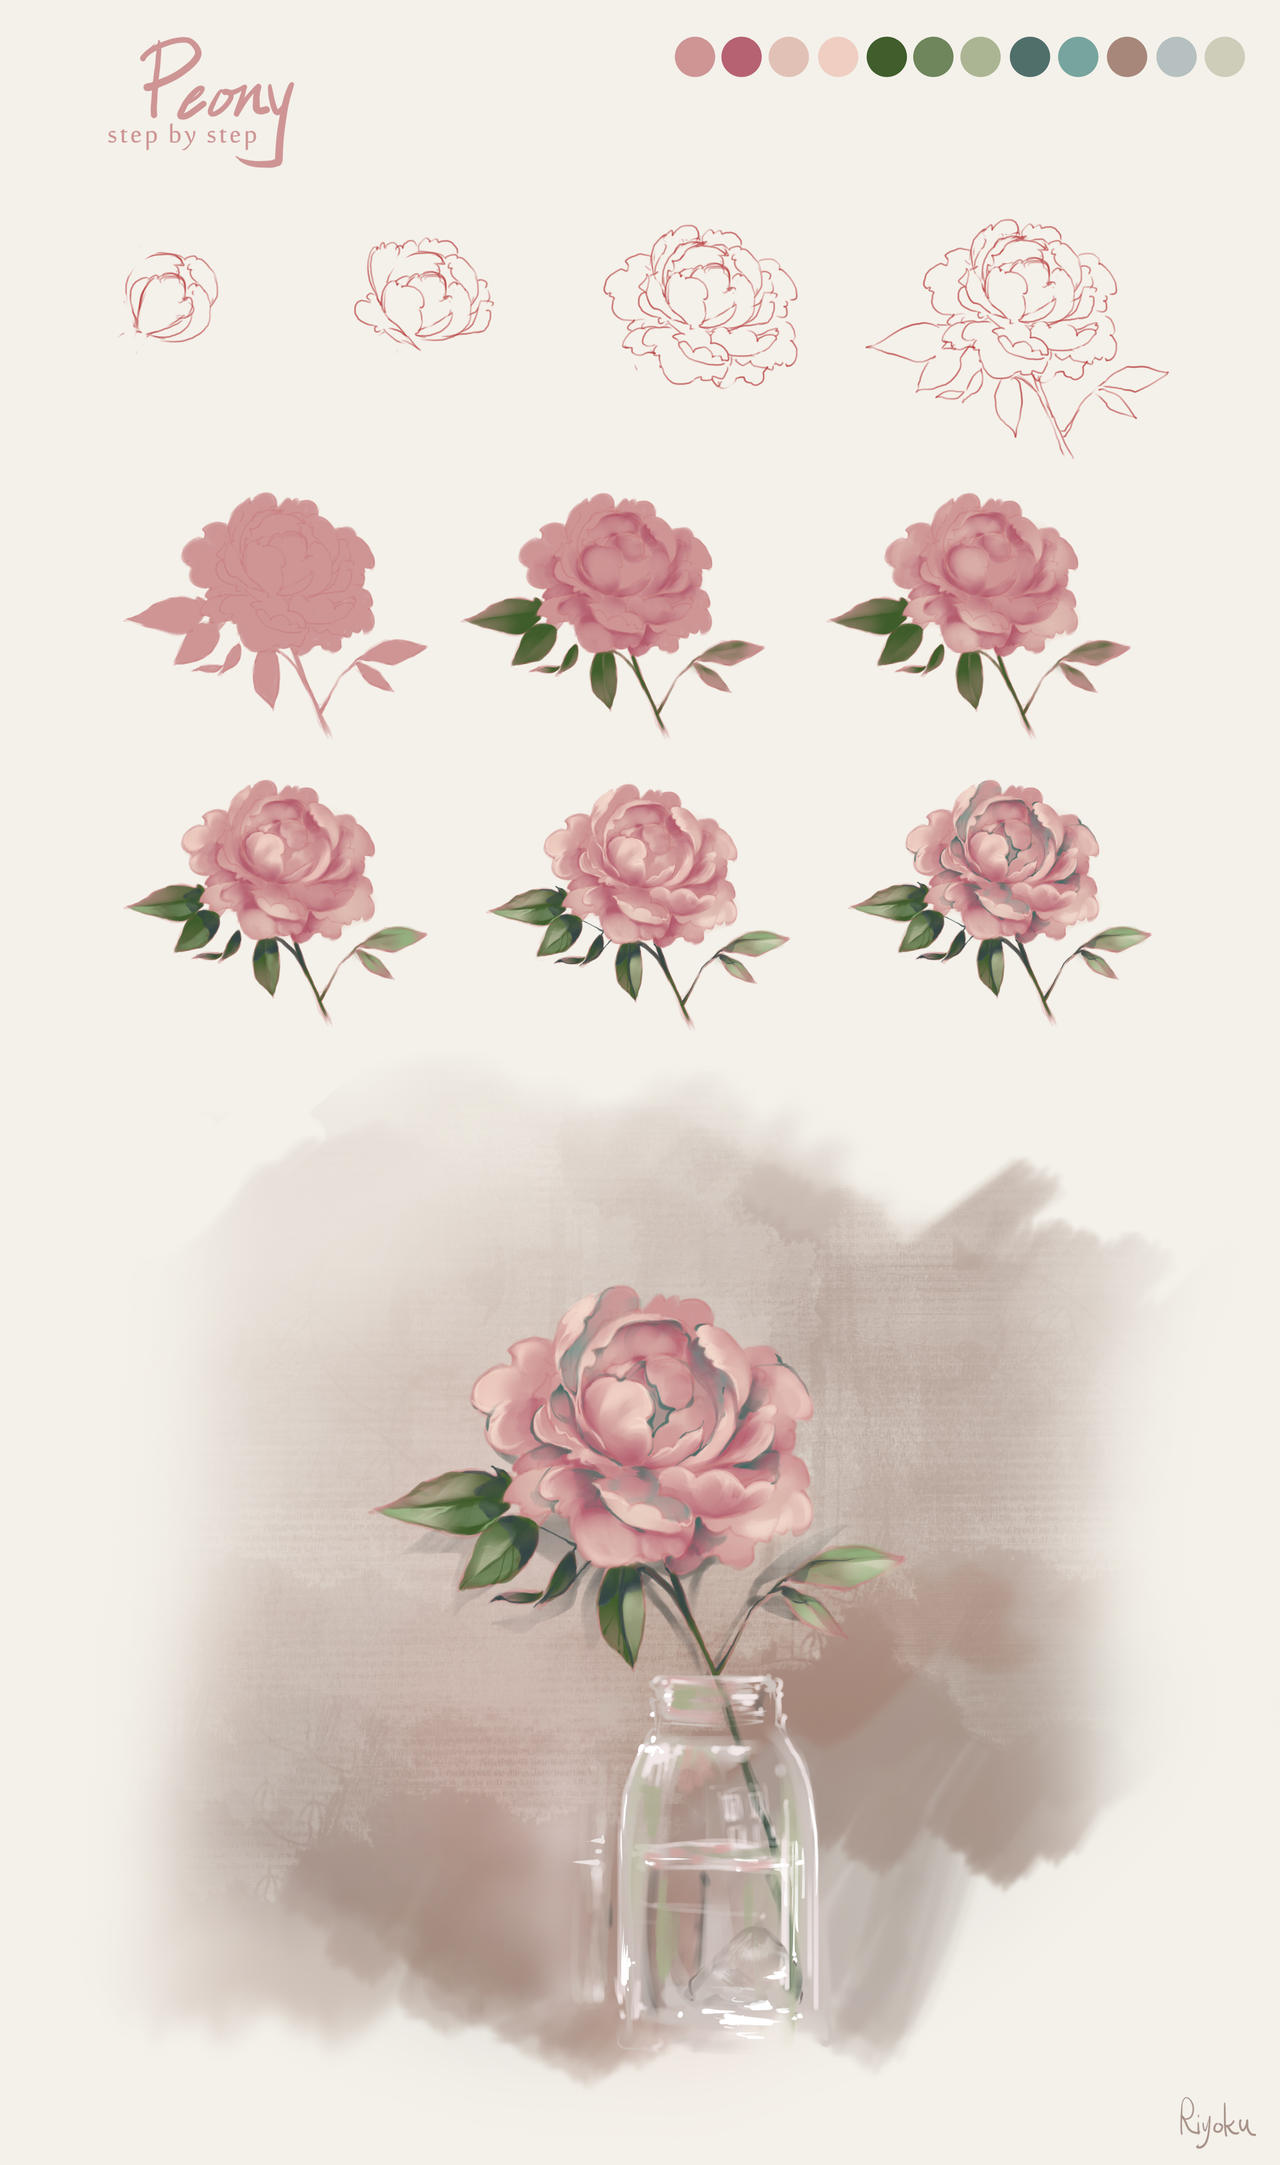 Flower Tutorial - Peony by Nyanfood